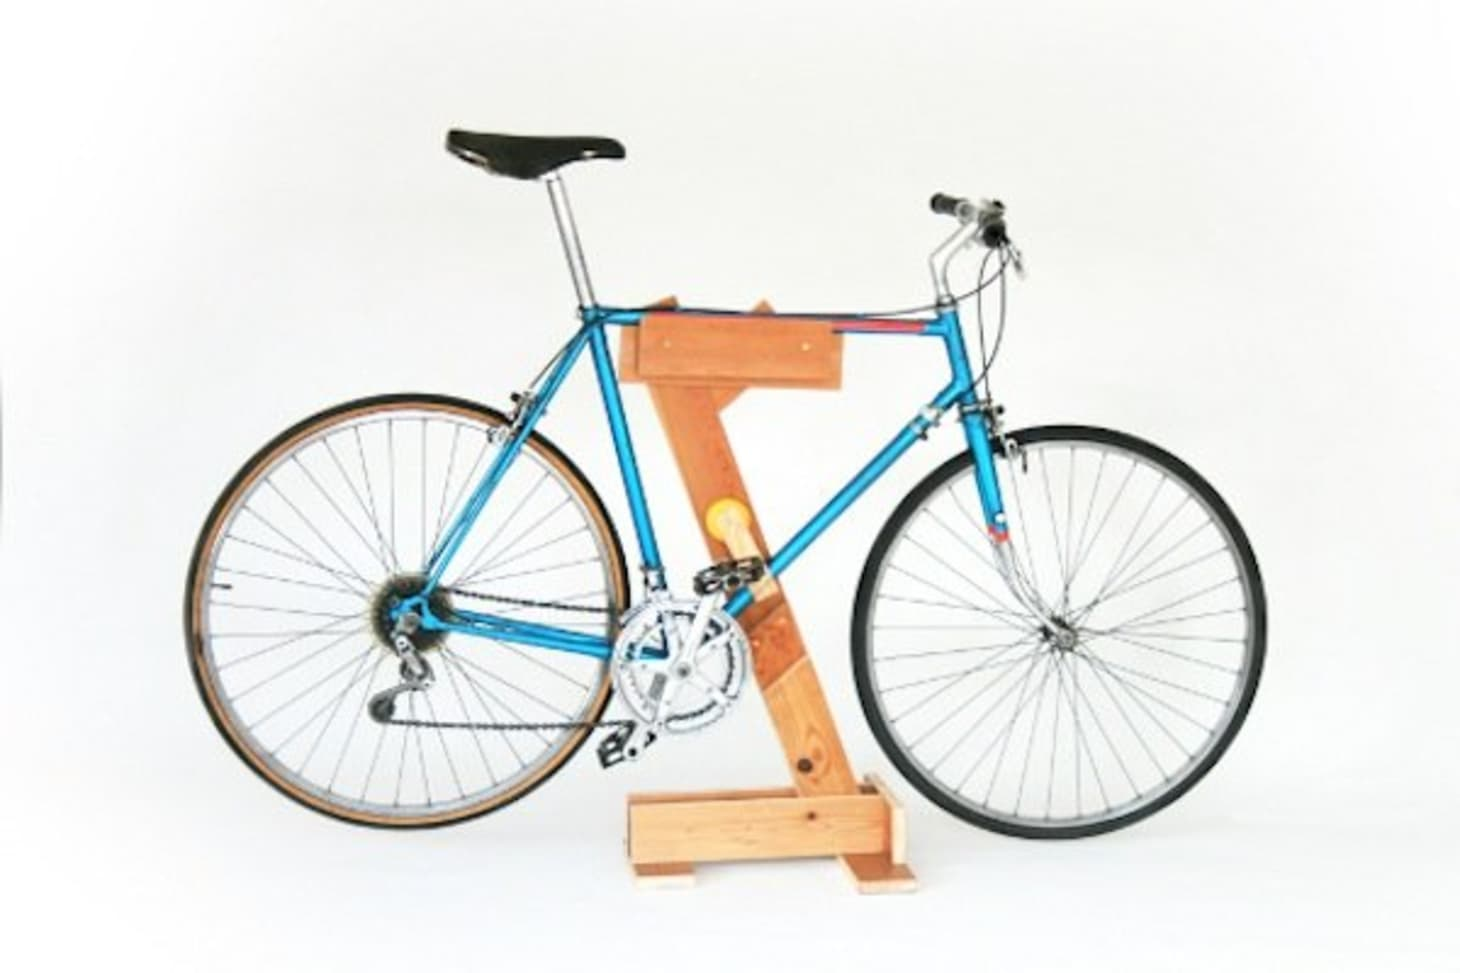 Diy Ideas 9 Bike Stands You Can Make Yourself Apartment